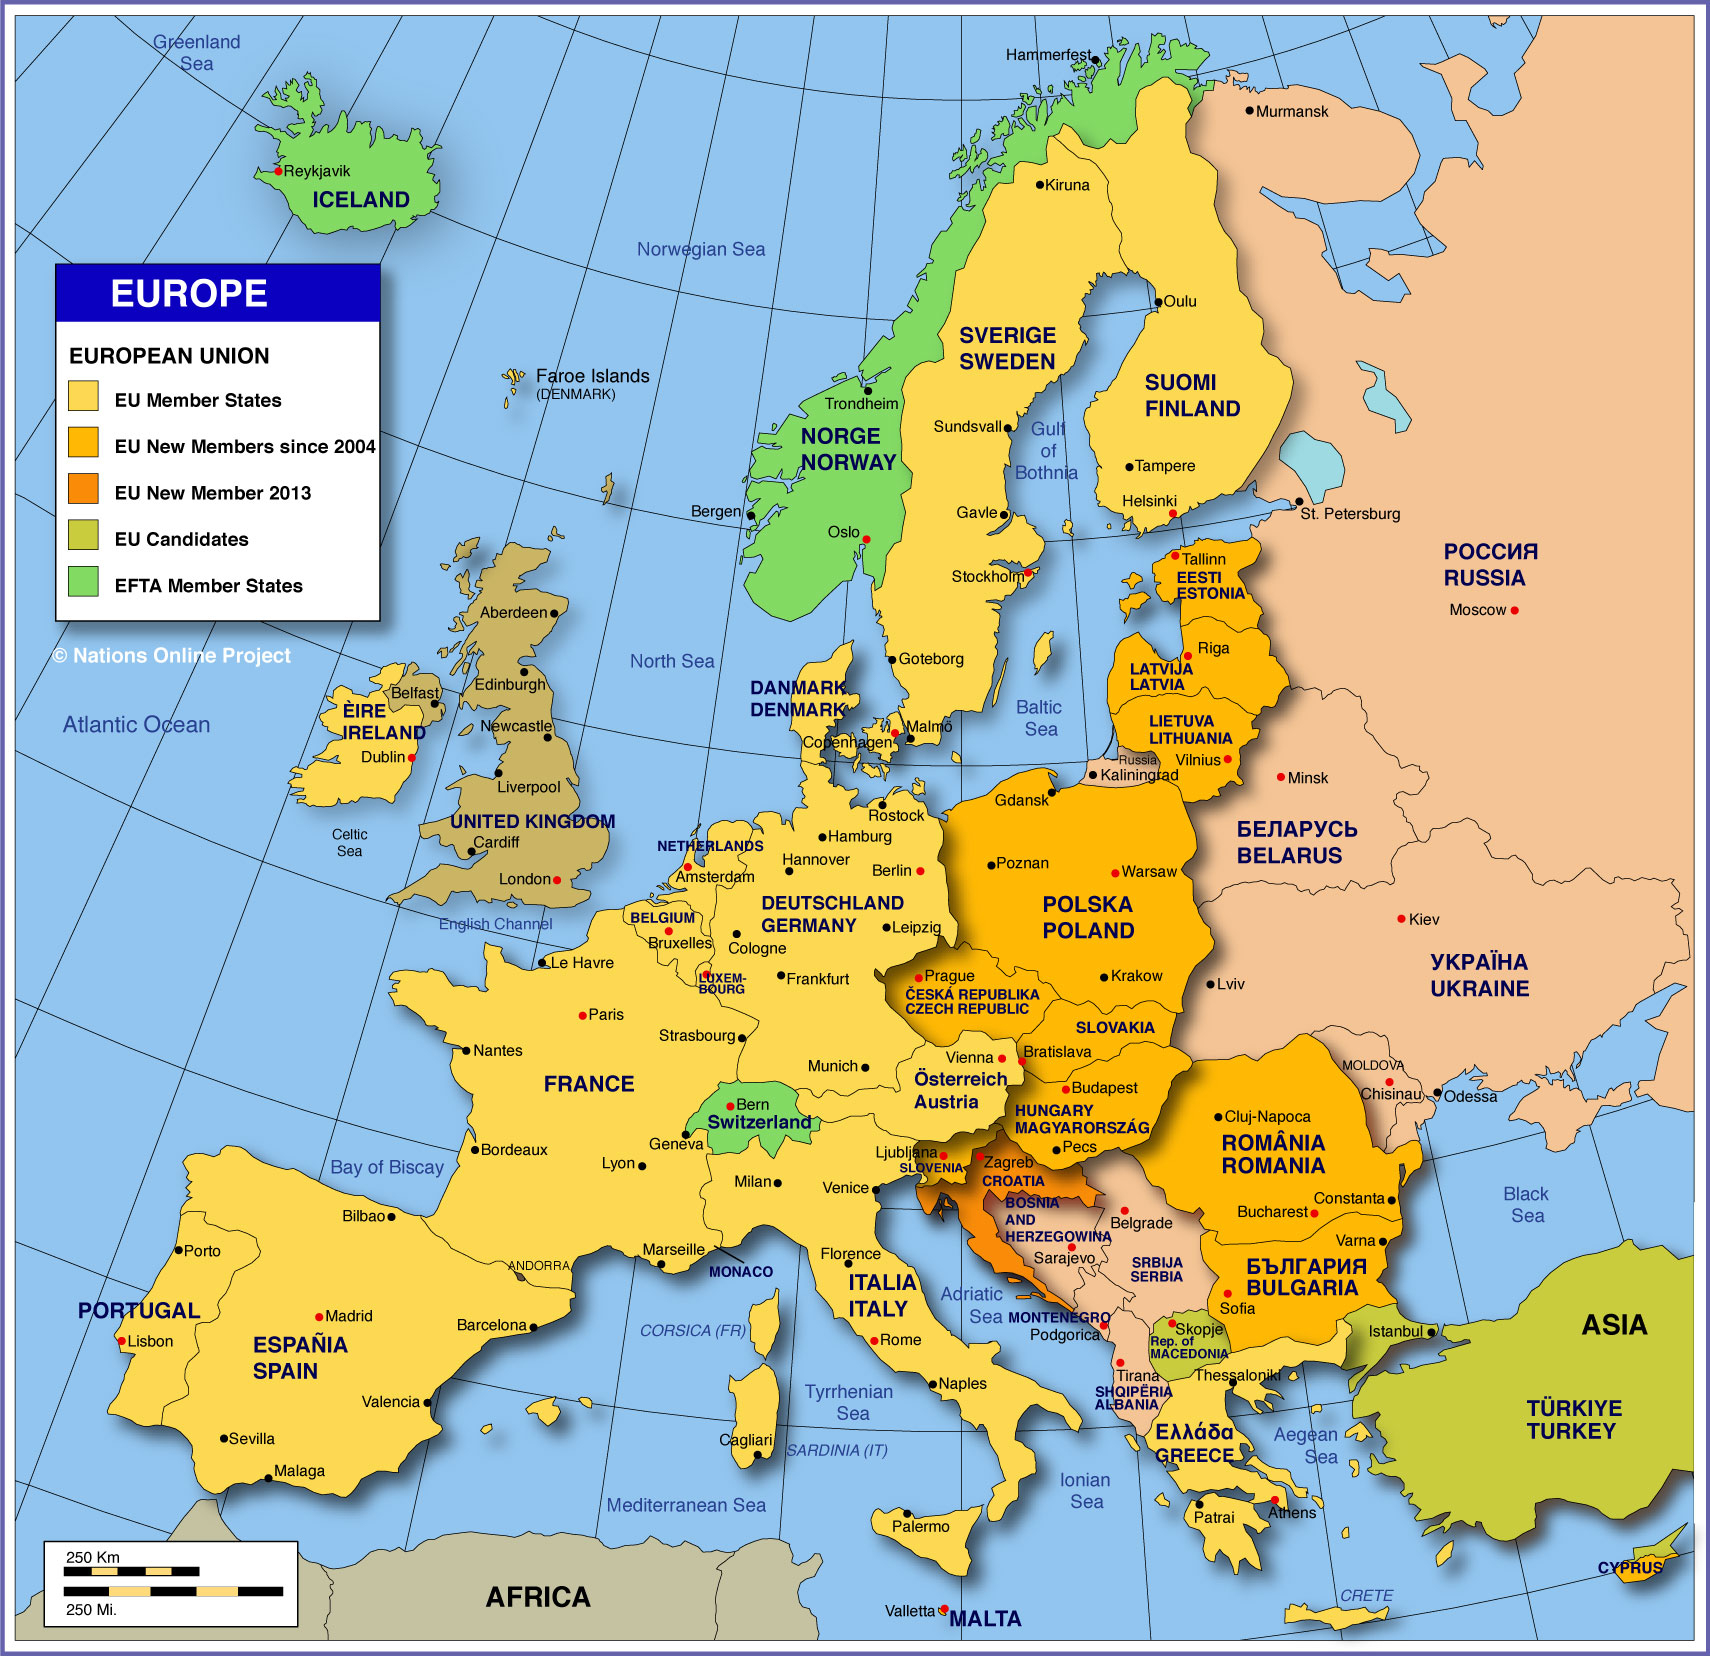 Map Of Europe - Member States Of The Eu - Nations Online Project intérieur Carte D Europe 2017